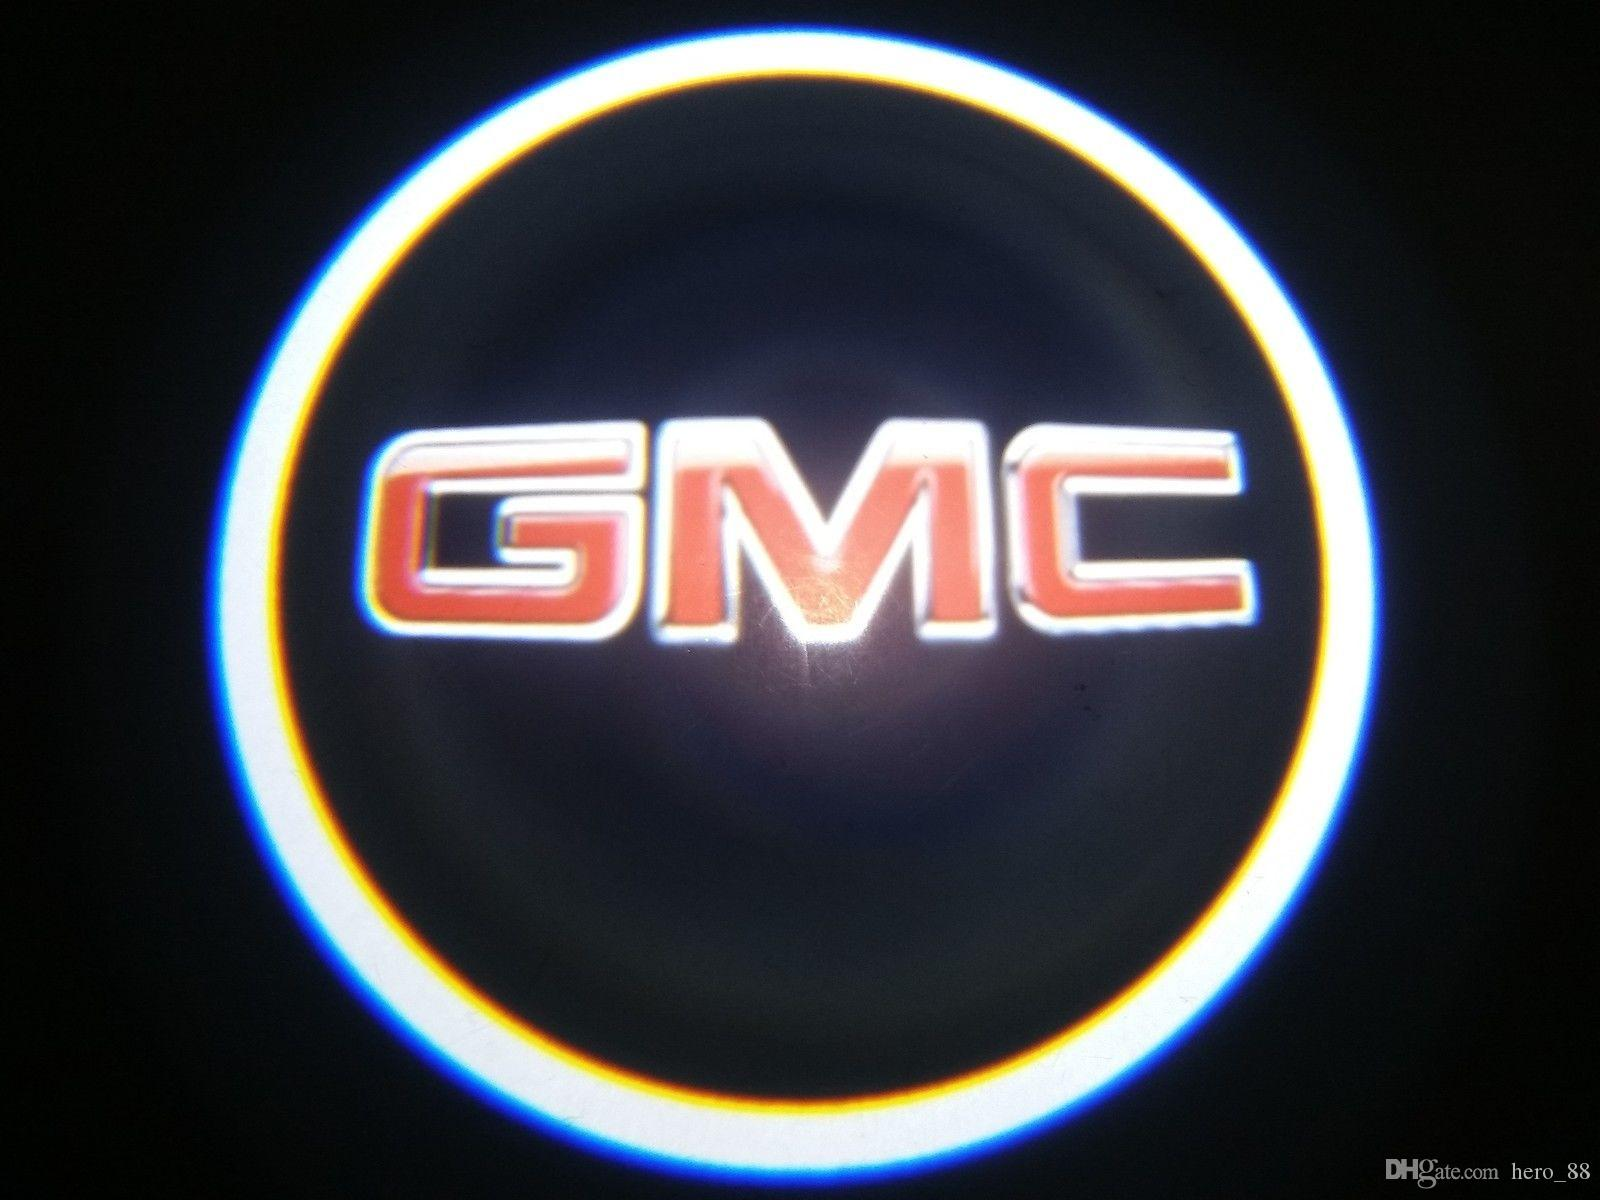 Chrysler led door projector courtesy puddle logo lights mr kustom - 2017 New Gmc Led Courtesy Ghost Shadow Lights Door Logo Projectors Gobo Logo Courtesy Puddle L S From Hero_88 20 11 Dhgate Com